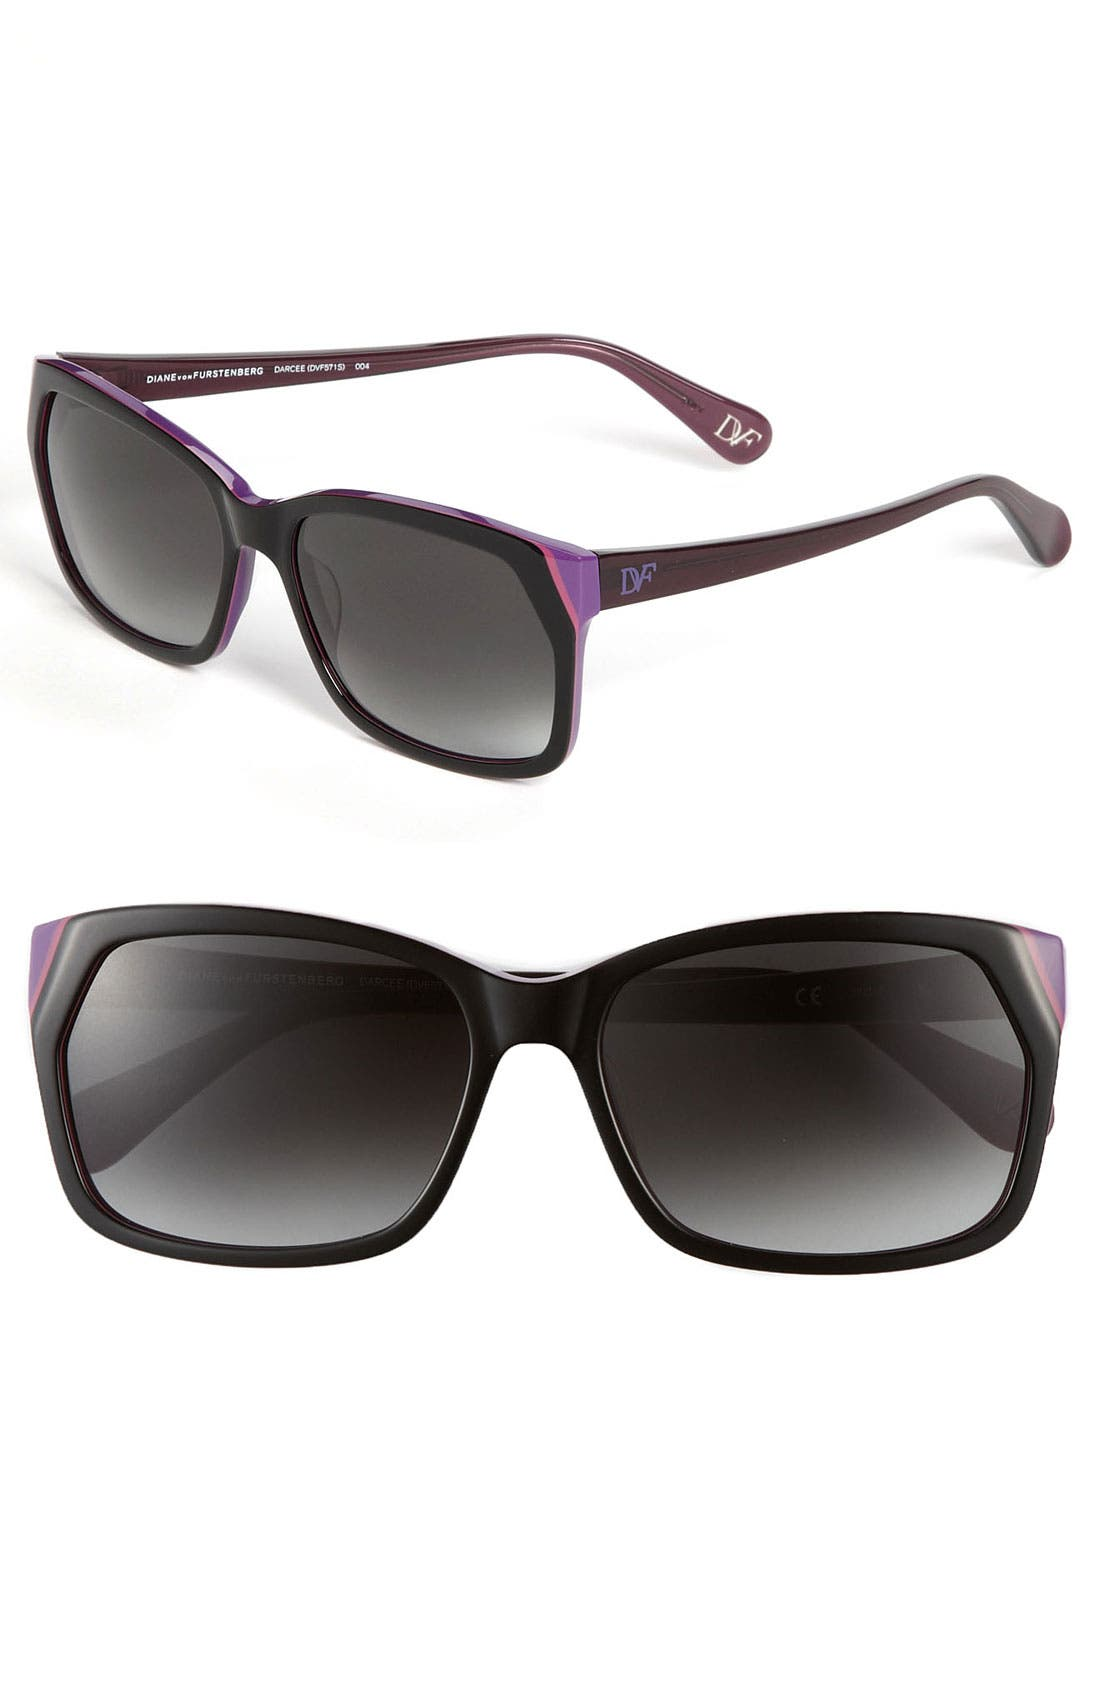 Alternate Image 1 Selected - Diane von Furstenberg 'Basic' Sunglasses